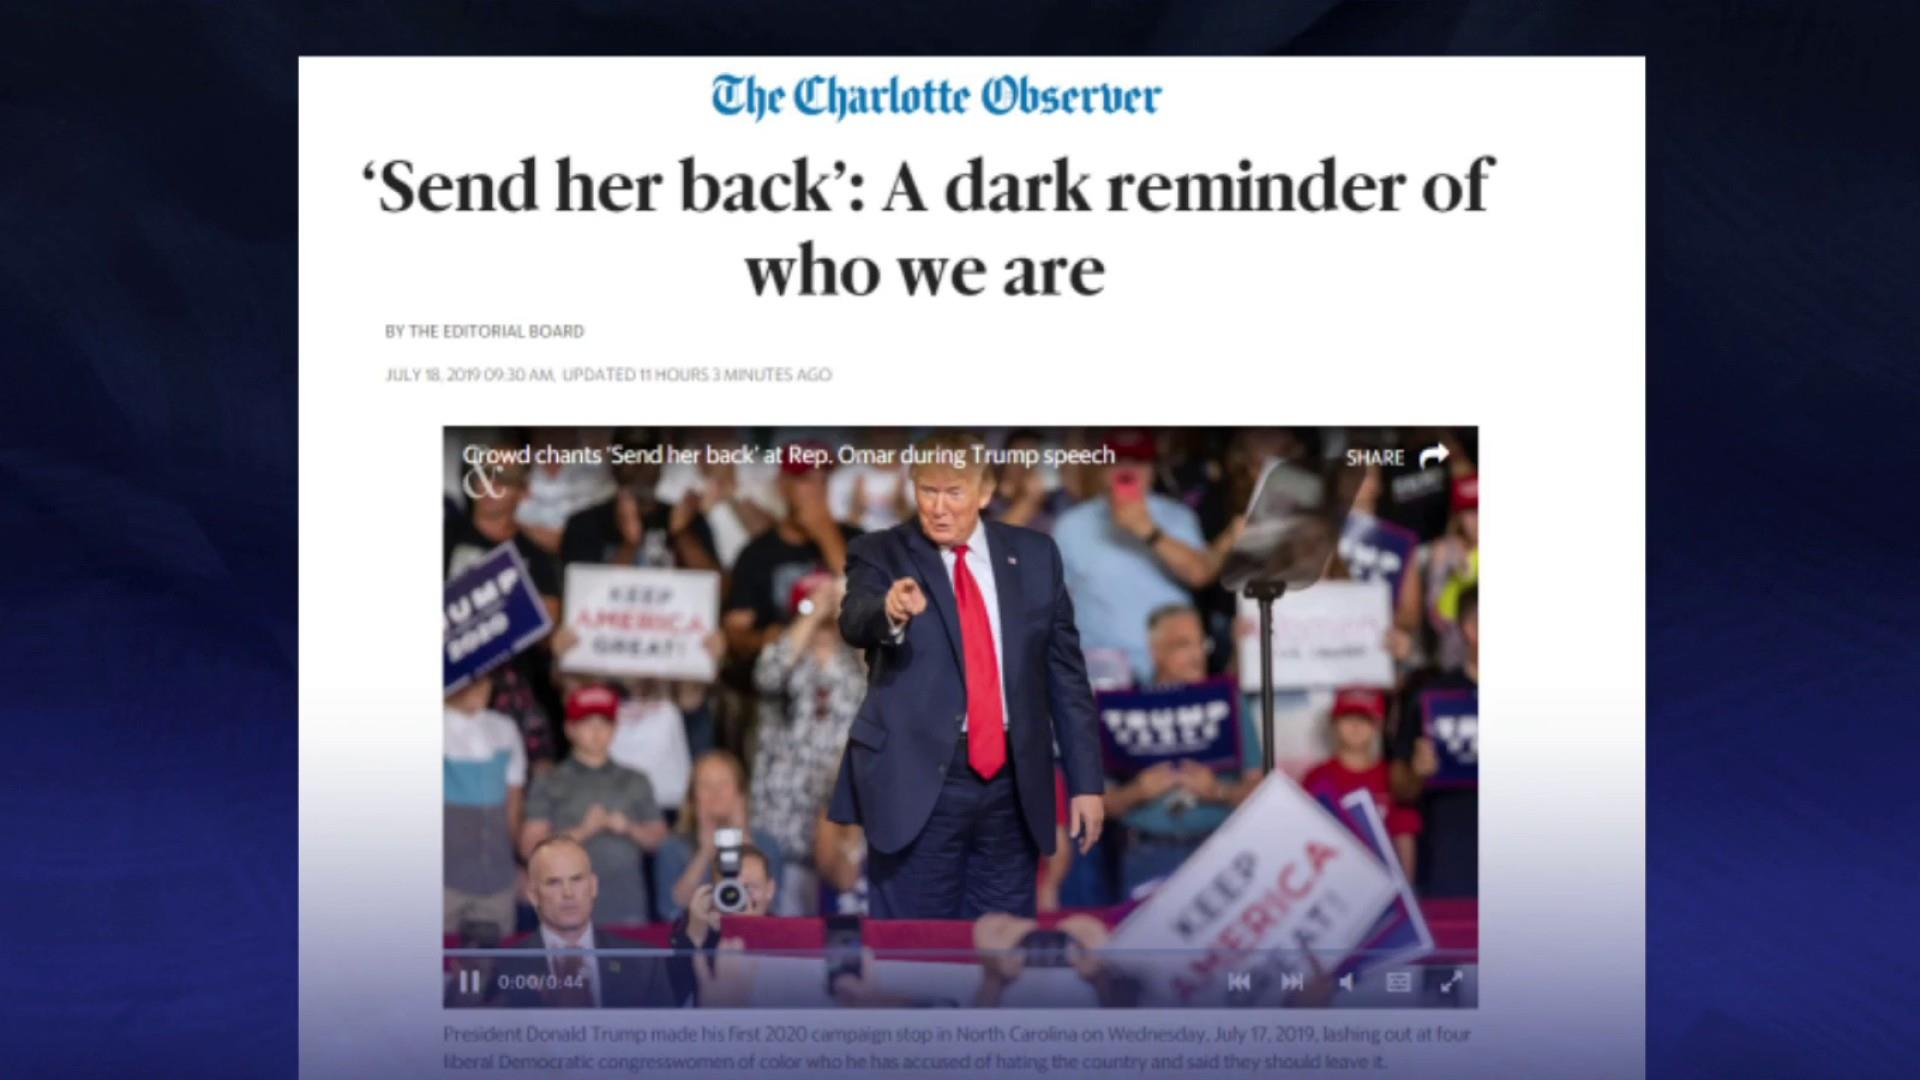 Charlotte Observer says 'send her back' chants are a dark reminder of who we are